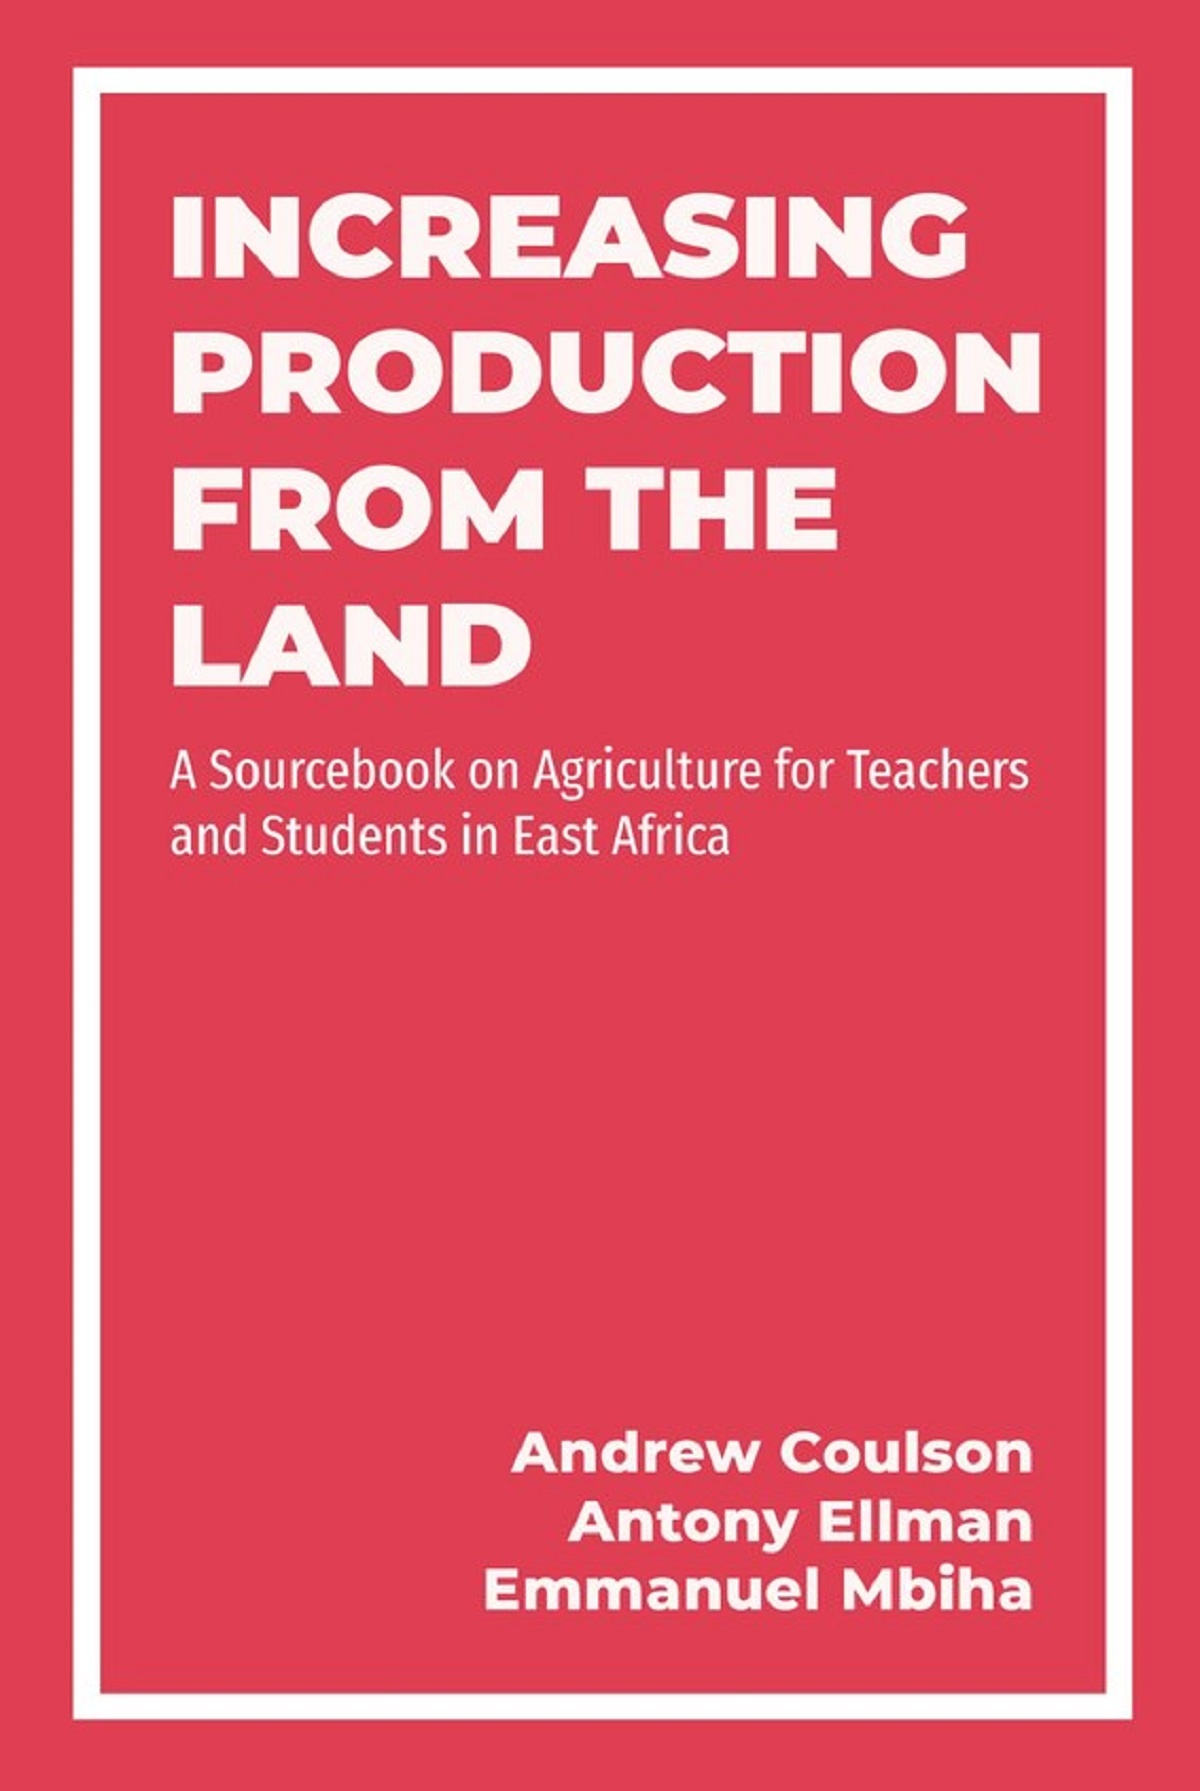 Increasing Production from the Land cover preview